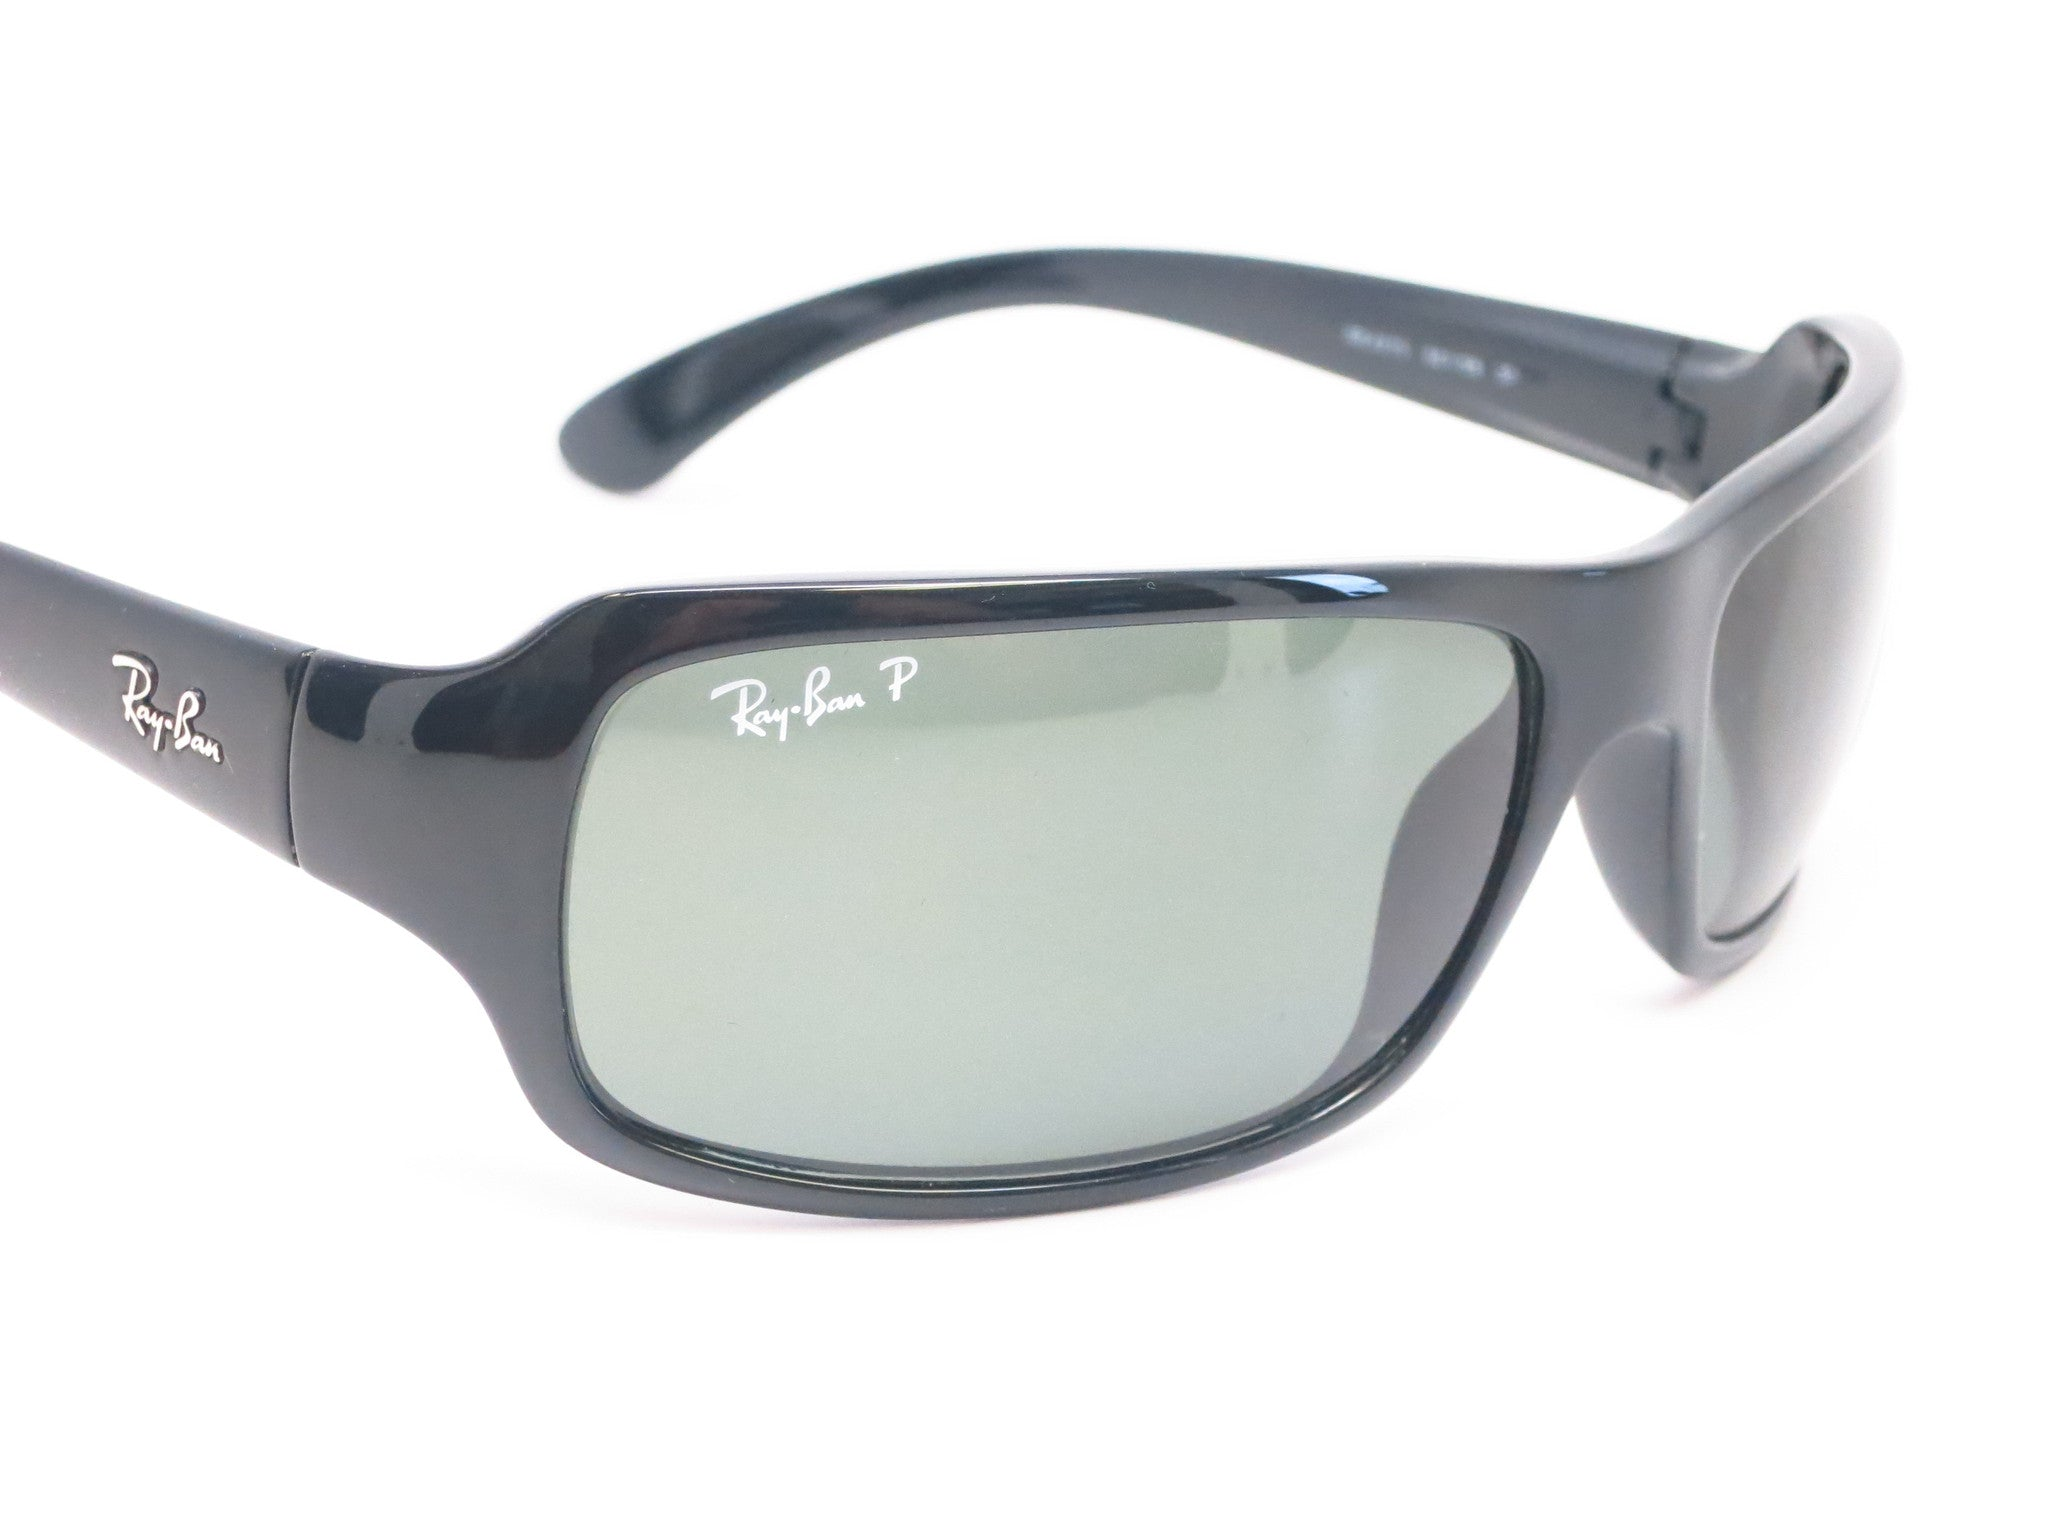 7e7a6dfdd34 ... Ray-Ban RB 4075 HighStreet 601 58 Black Sunglasses - RayBan - Eye Heart  ...